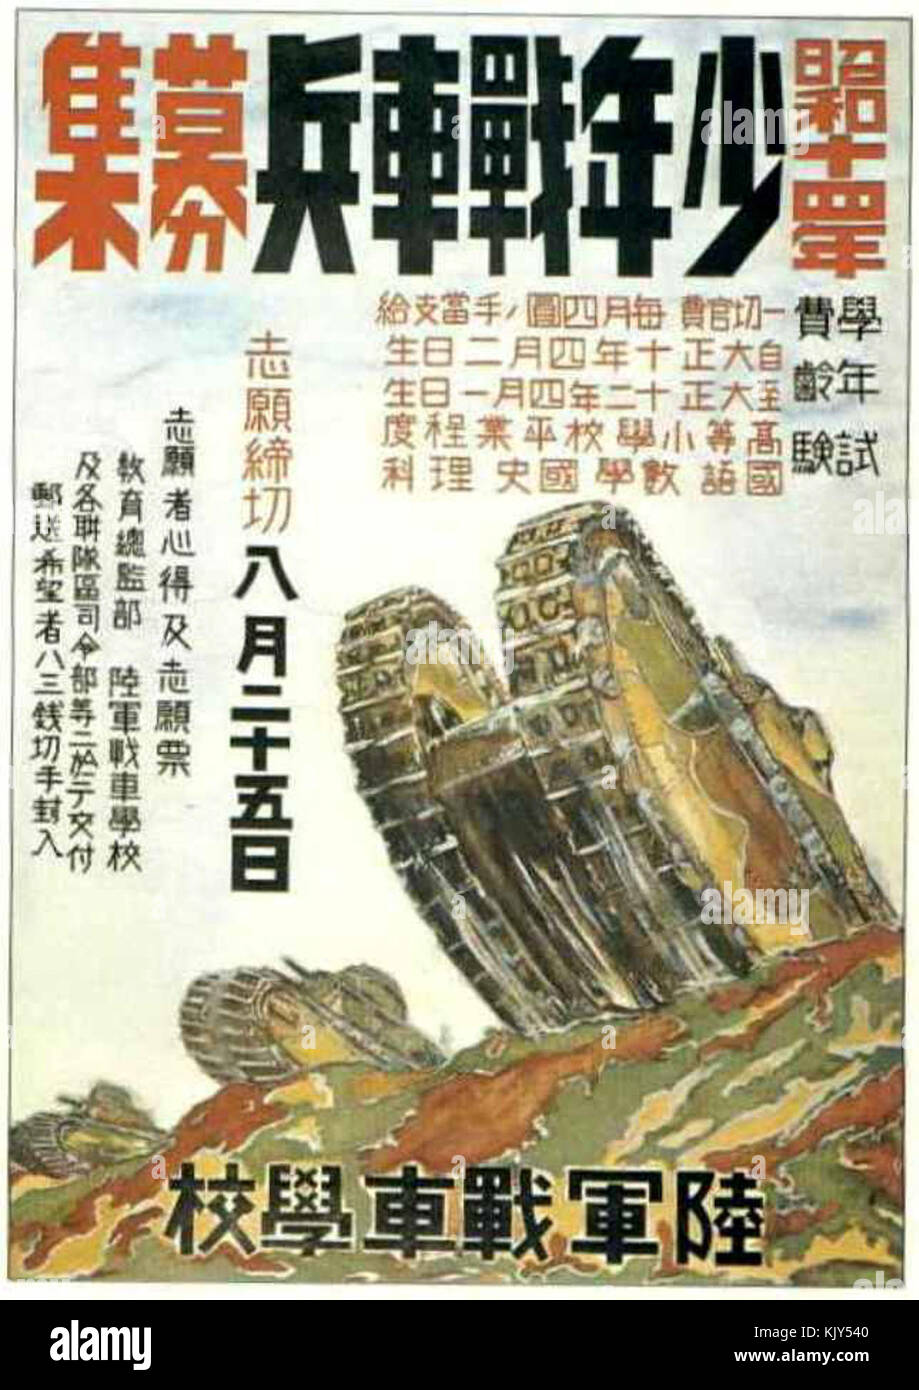 Recruitment poster for the Tank School of the Imperial Japanese Army - Stock Image